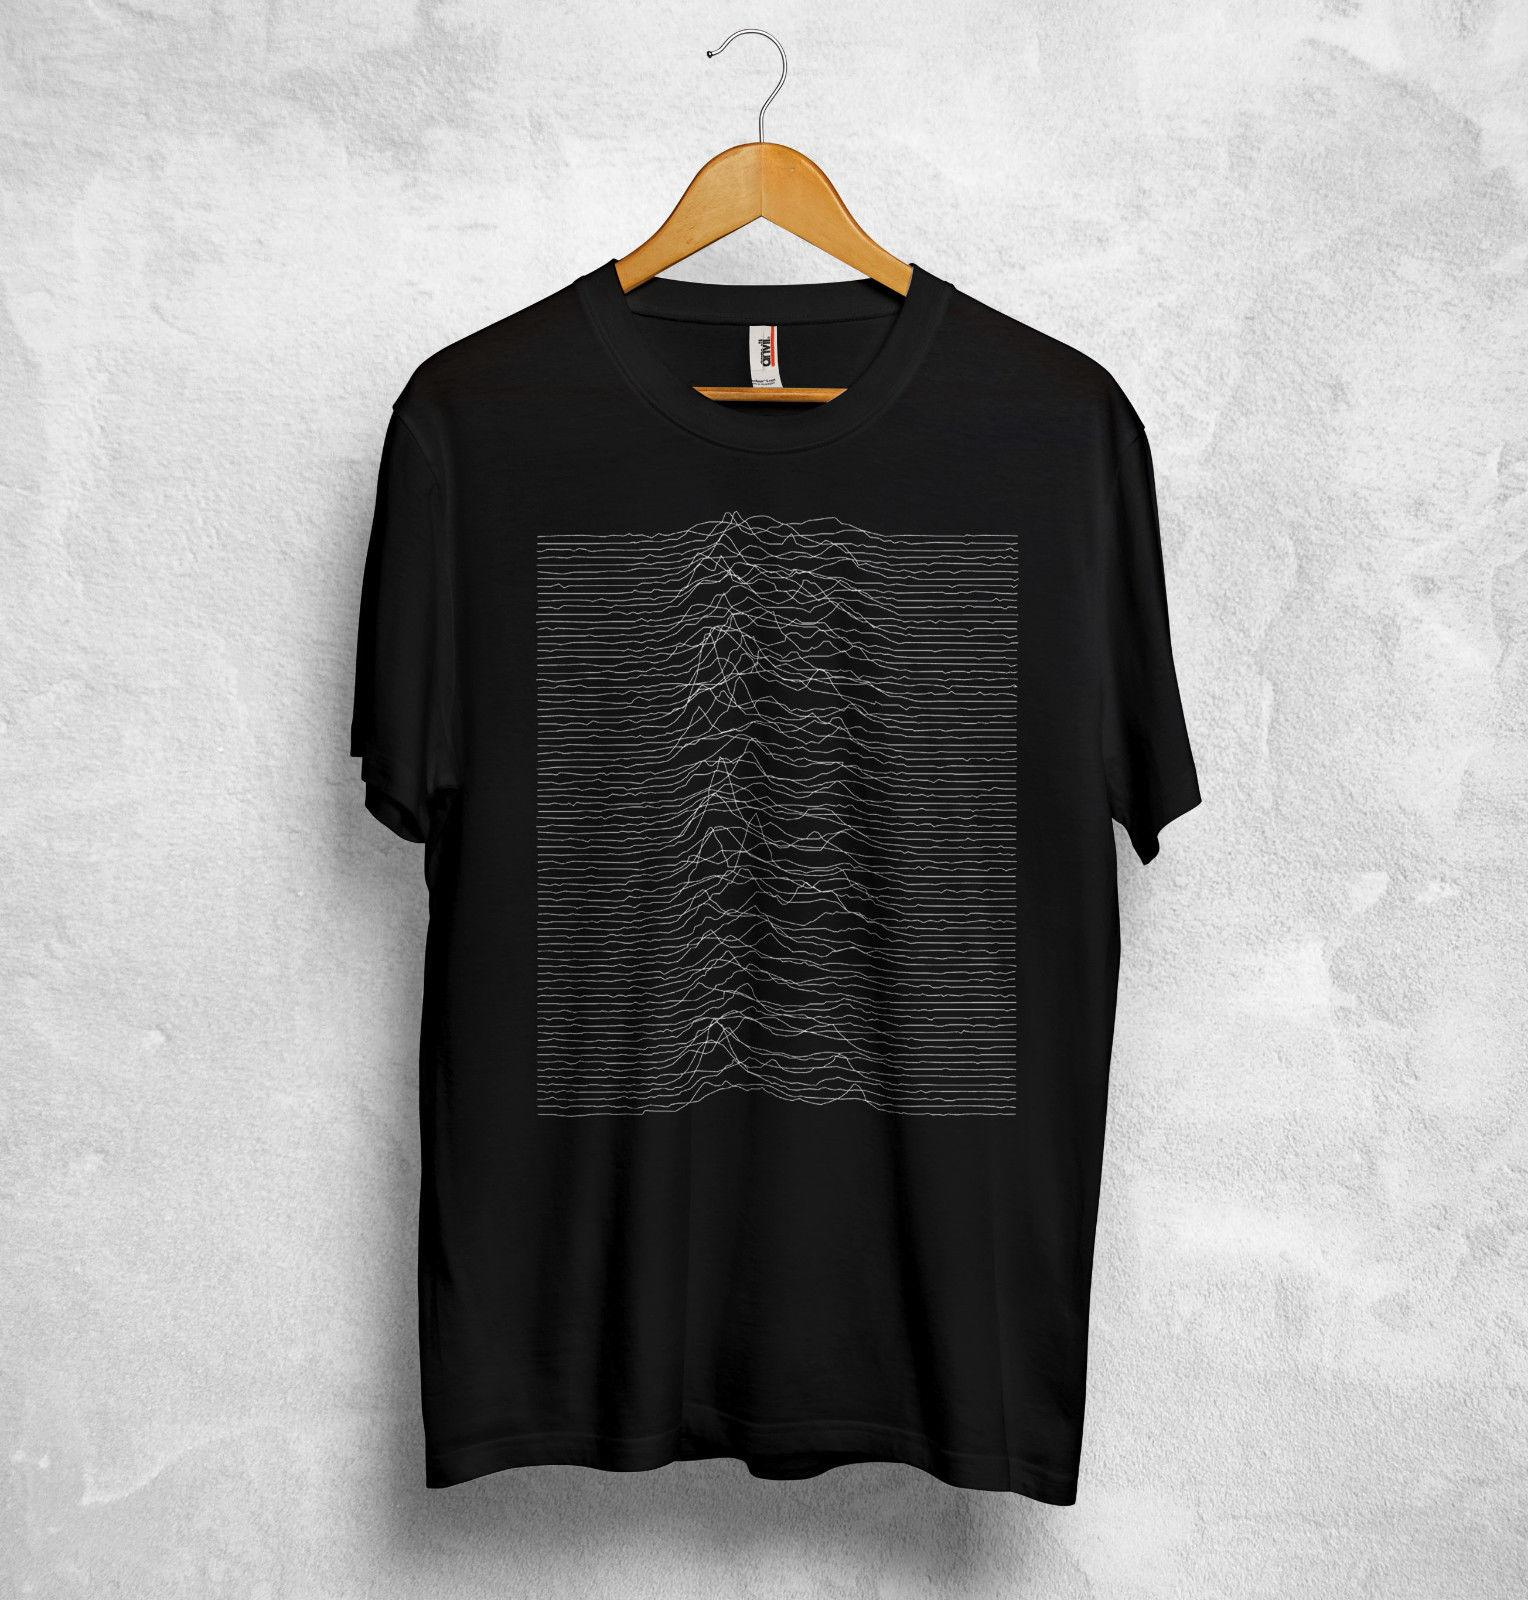 935ce6c0 Unknown Pleasures T Shirt Top Joy Division English Rock Transmission The  Cure New Fashion For Men T Shirt Sleeve Top Tee Best Deal On T Shirts That T  Shirt ...